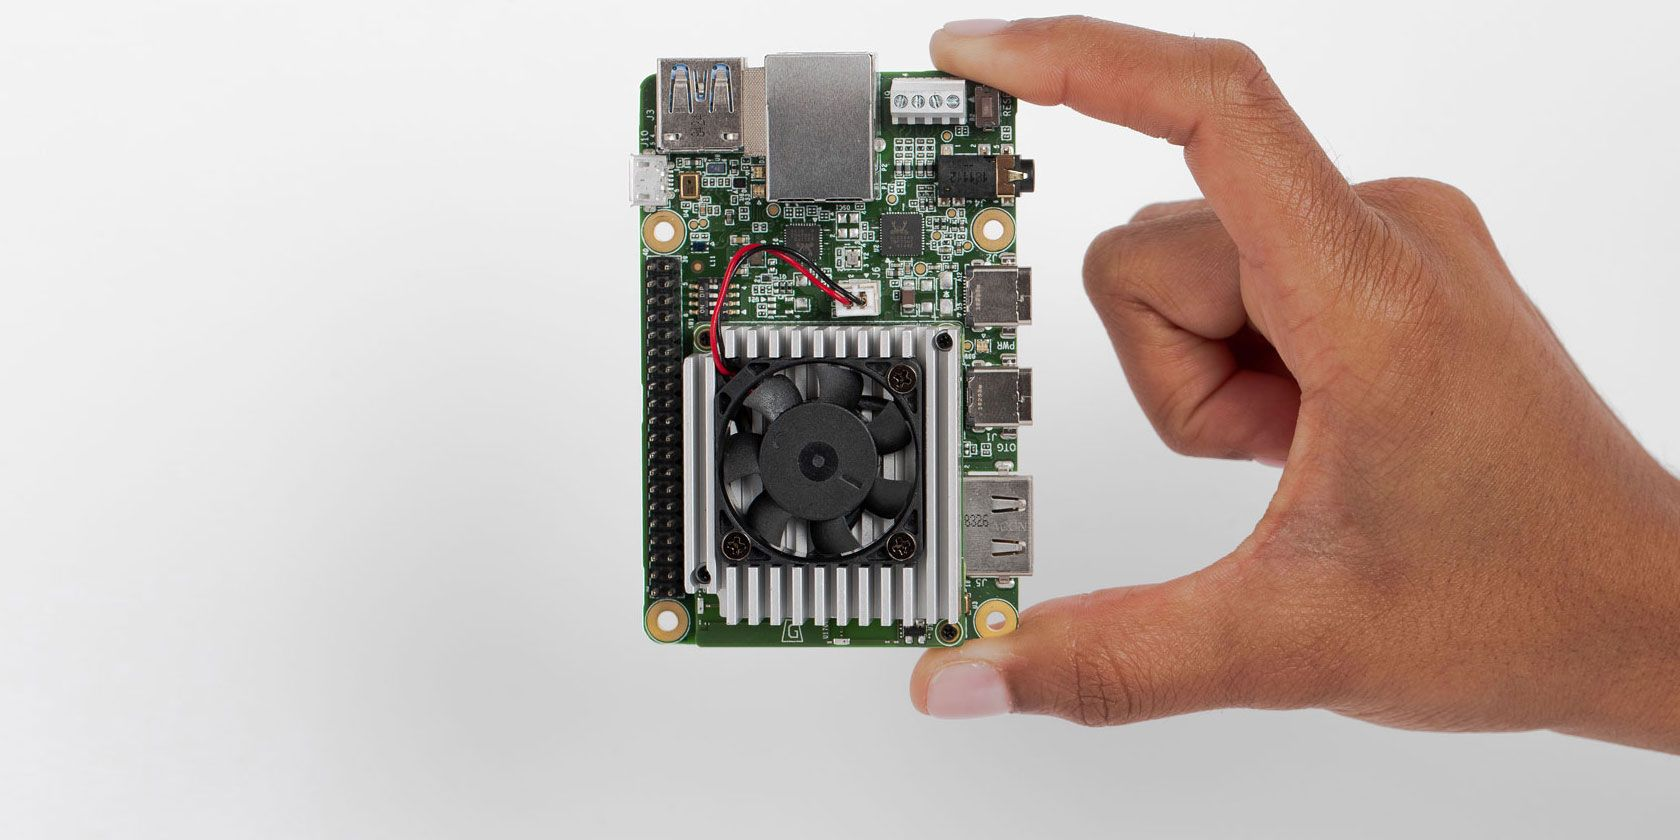 Is the Google Coral Dev Board Better Than a Raspberry Pi? in 2019